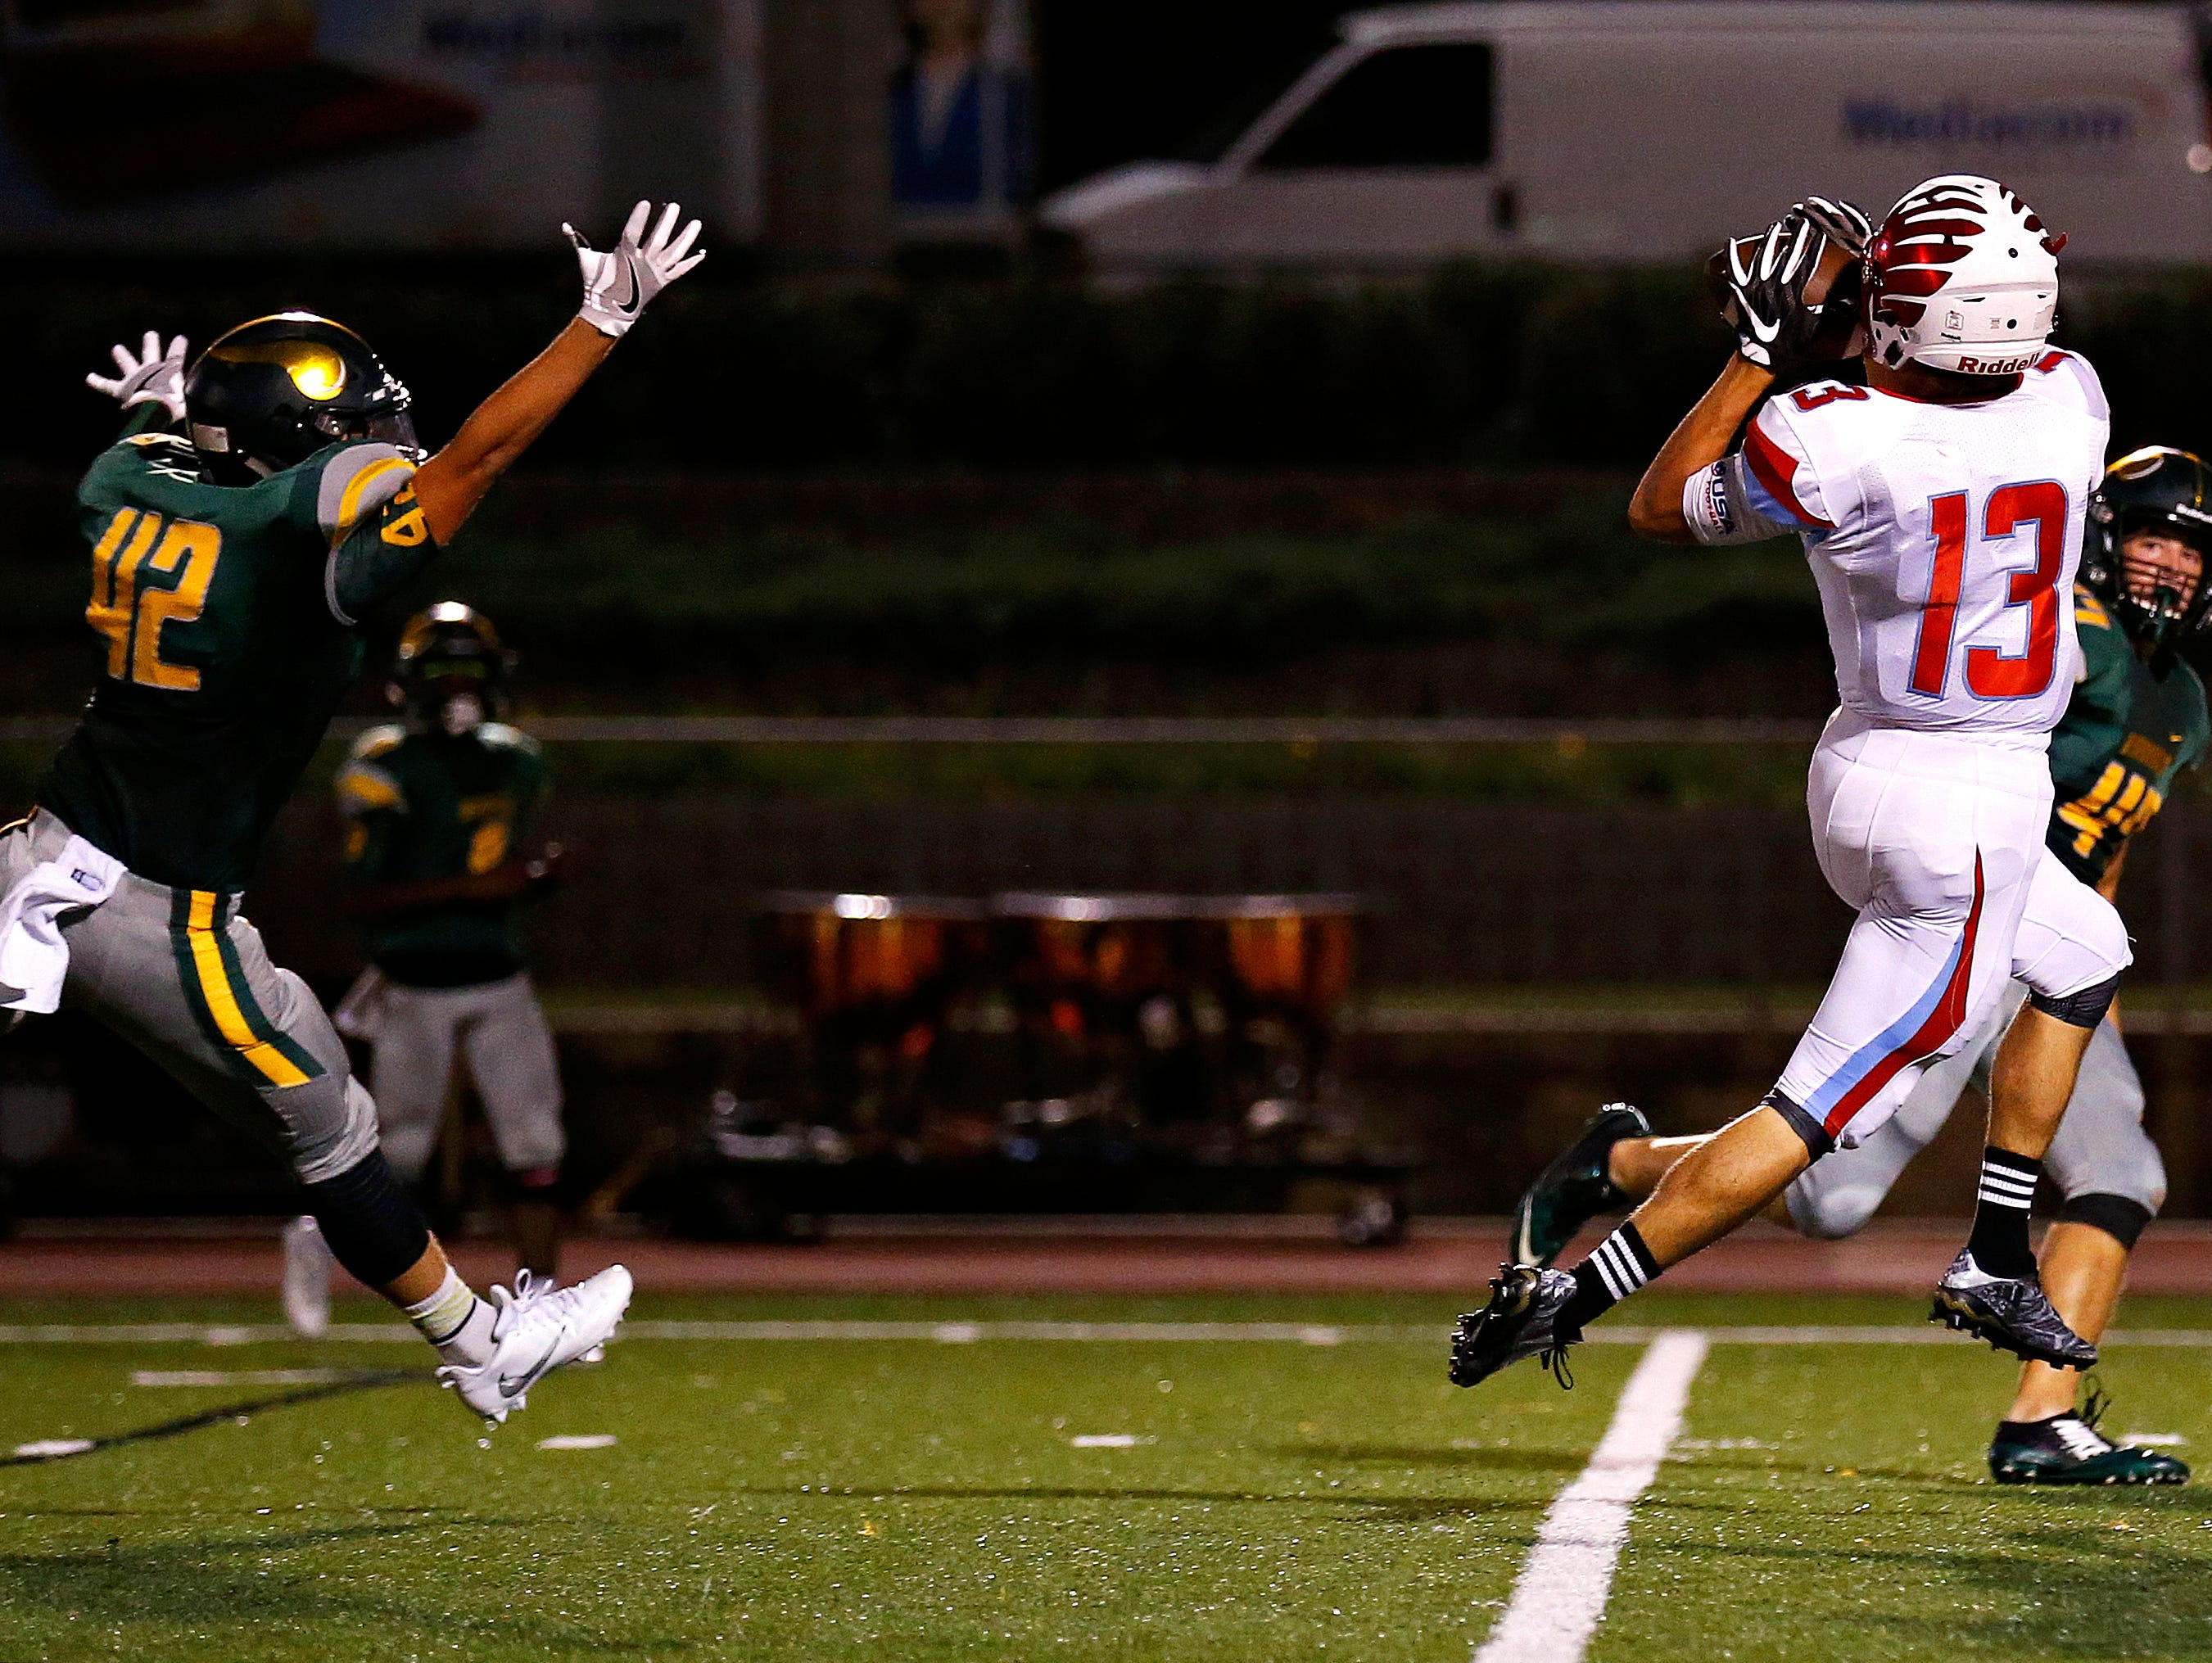 Glendale High School wide receiver Max Nichols (13) catches a long pass from quarterback Alex Houston (not pictured) for a touchdown during second quarter action of the football game between Glendale High School and Parkview High School at JFK Stadium in Springfield, Mo. on Sept. 22, 2016.